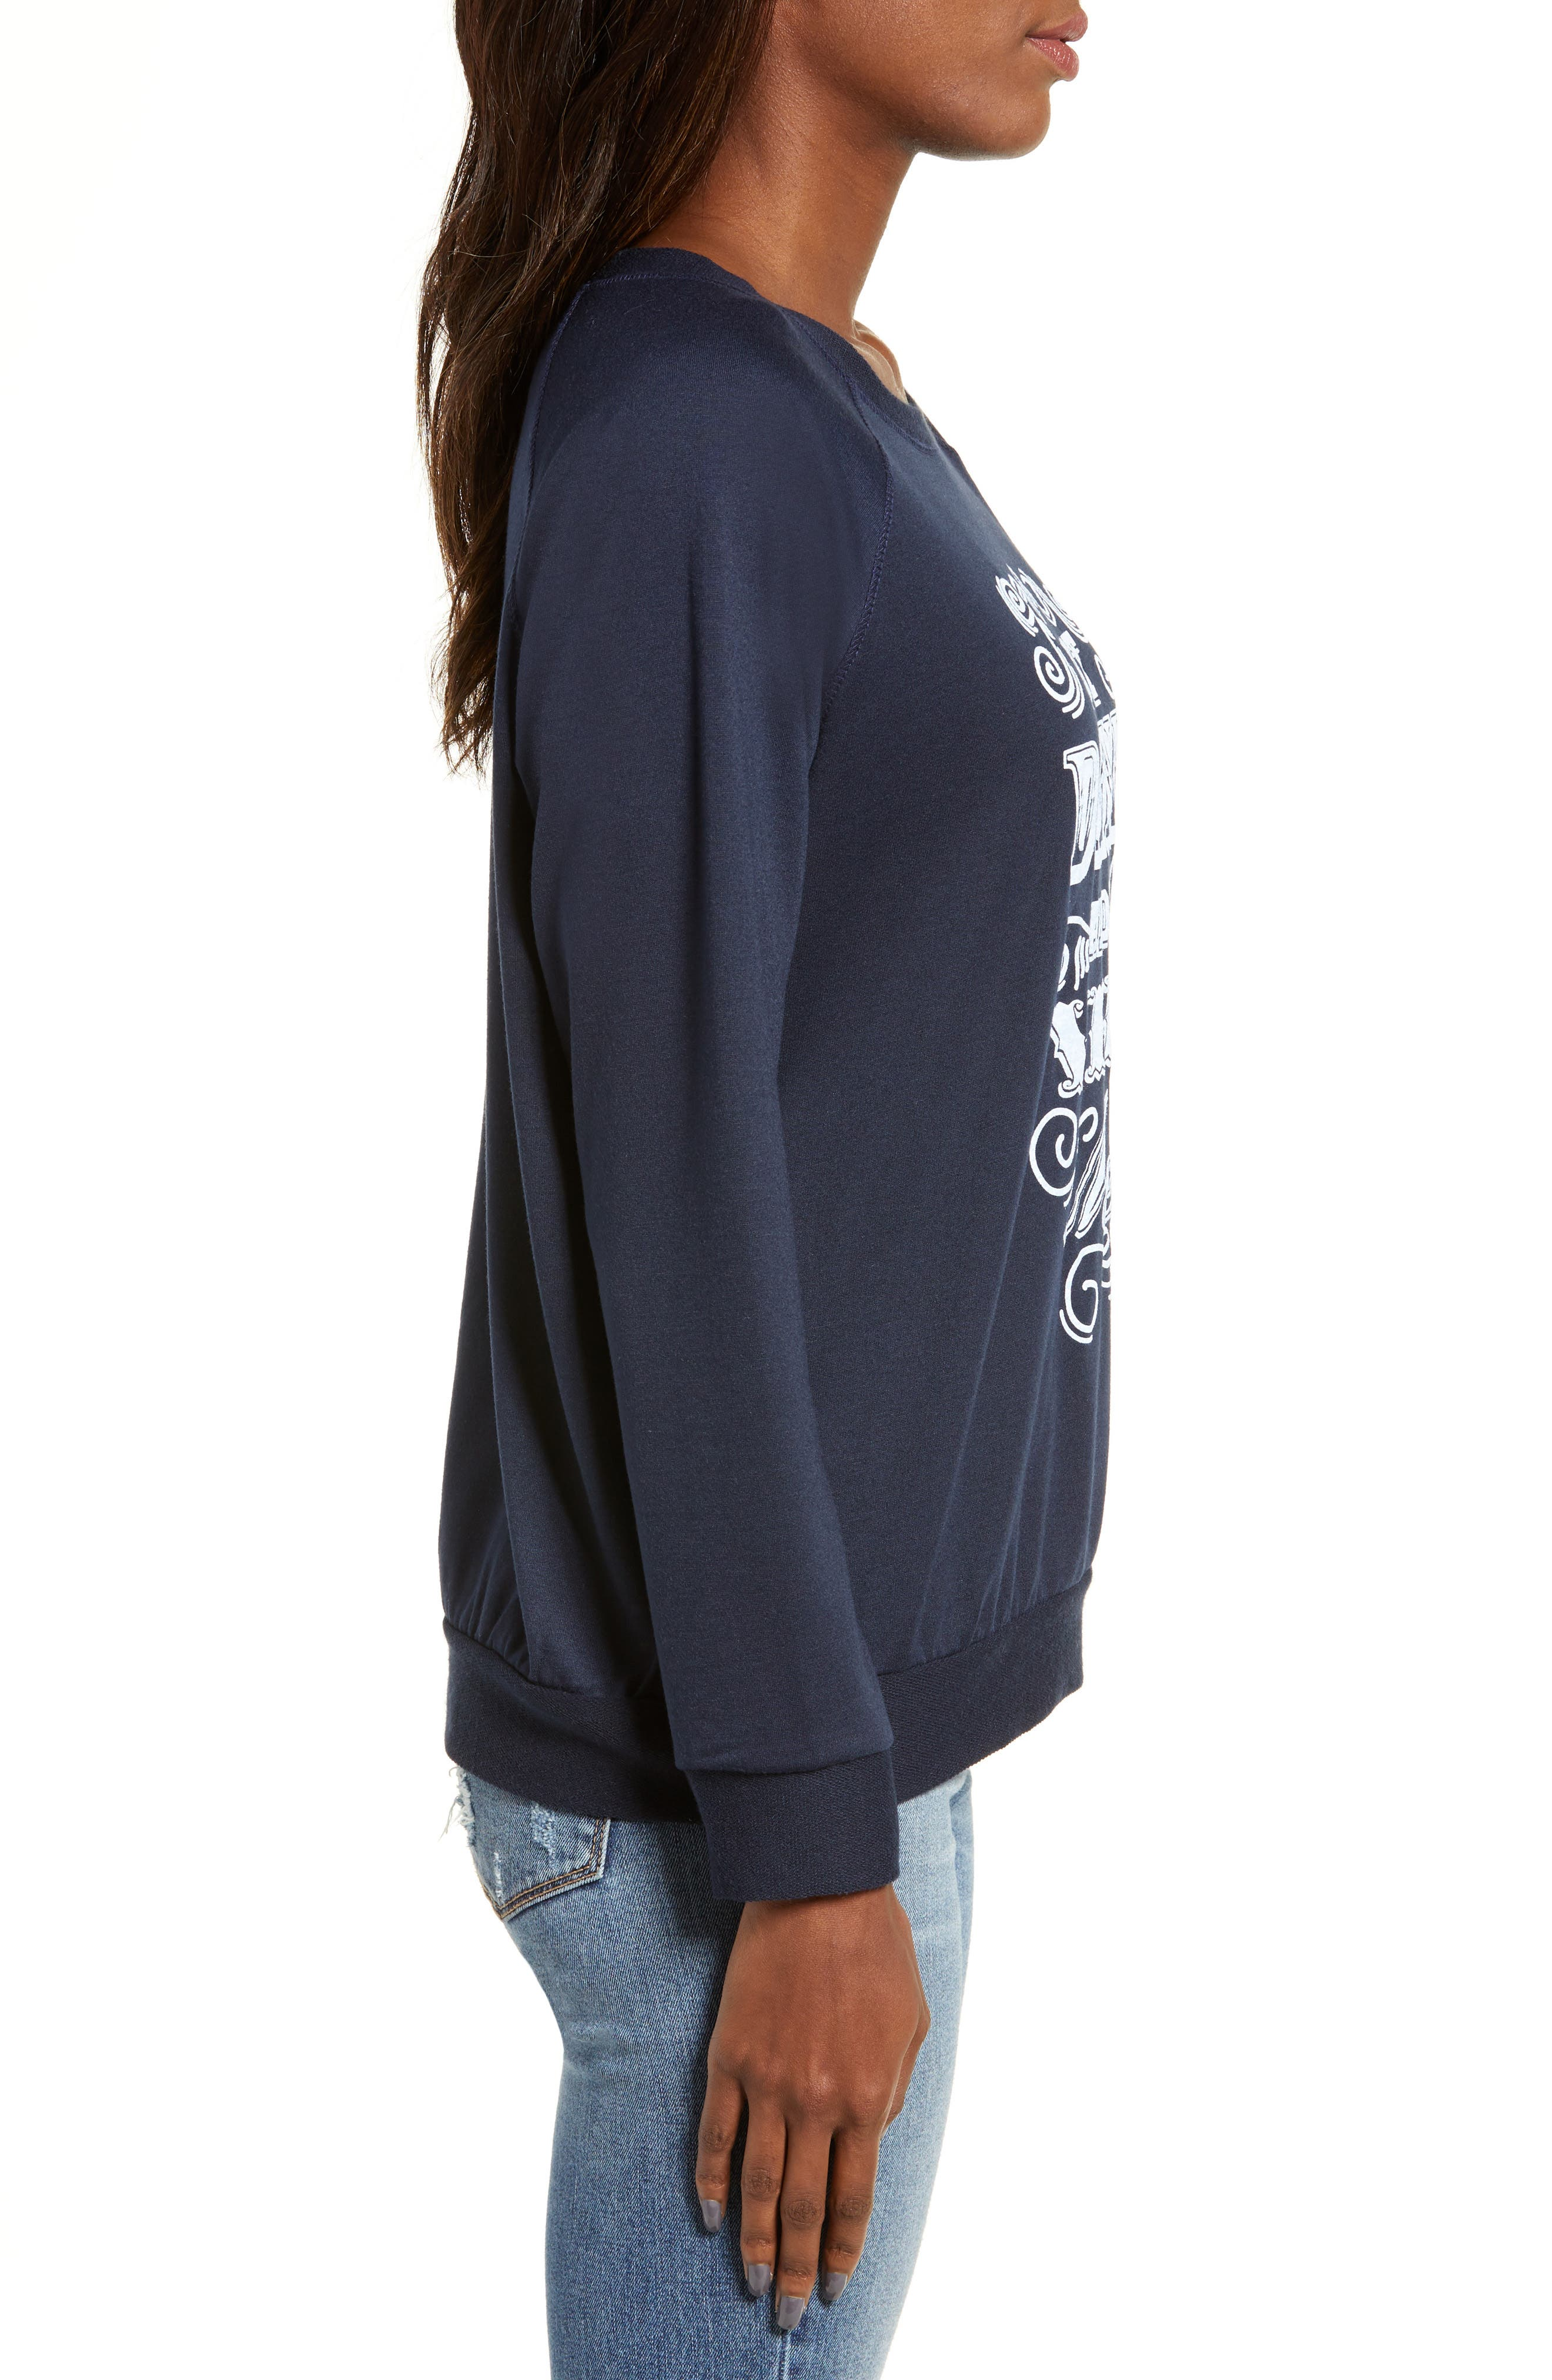 Eat, Drink & Be Merry Pullover,                             Alternate thumbnail 3, color,                             NAVY